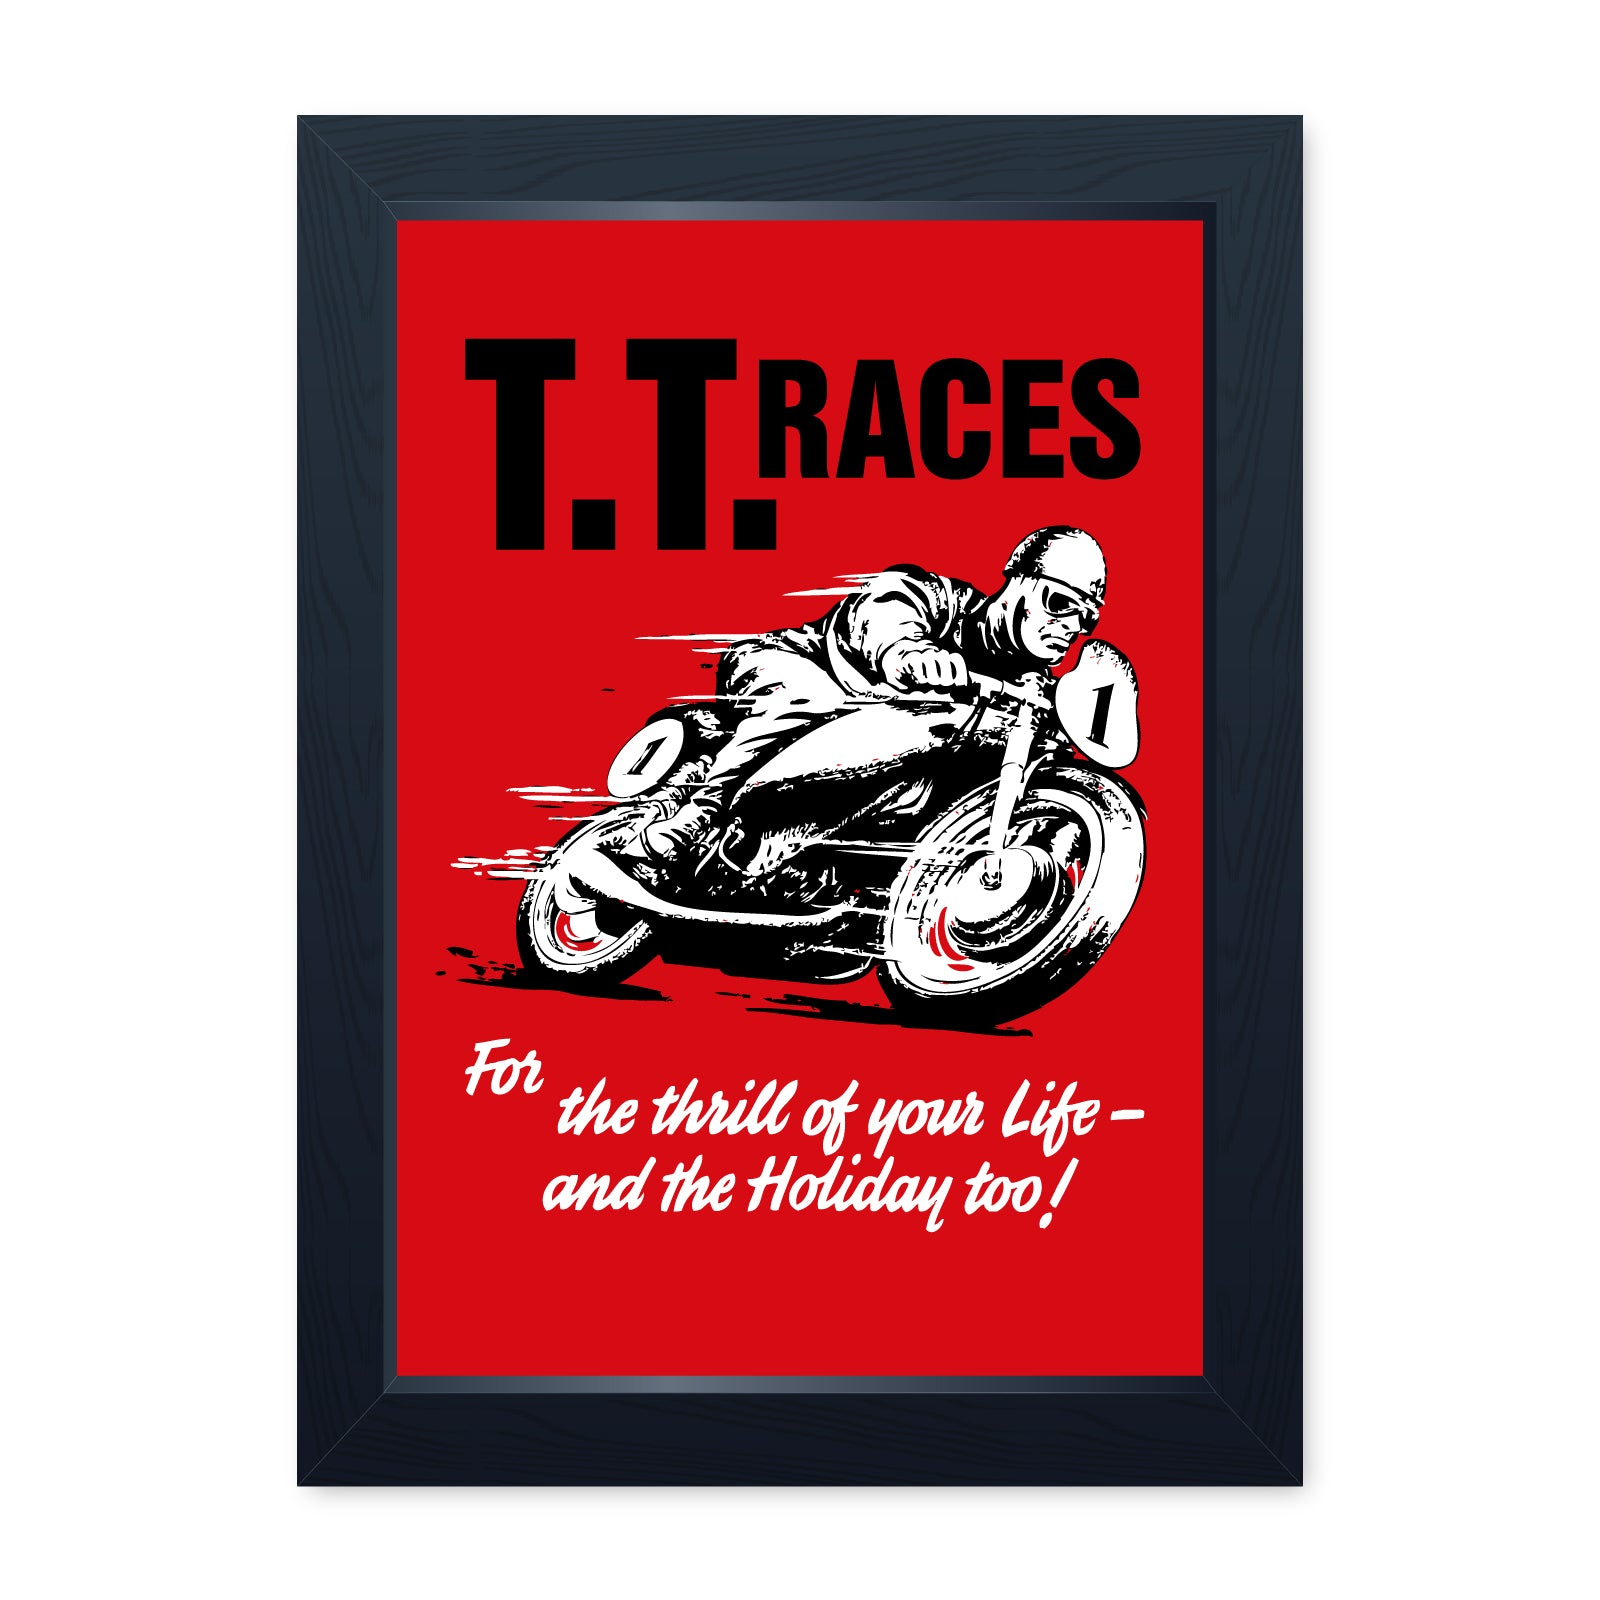 TT Races, Retro Quality Framed Motorcycle Print - Home Decor Kitchen Bathroom Man Cave Wall Art